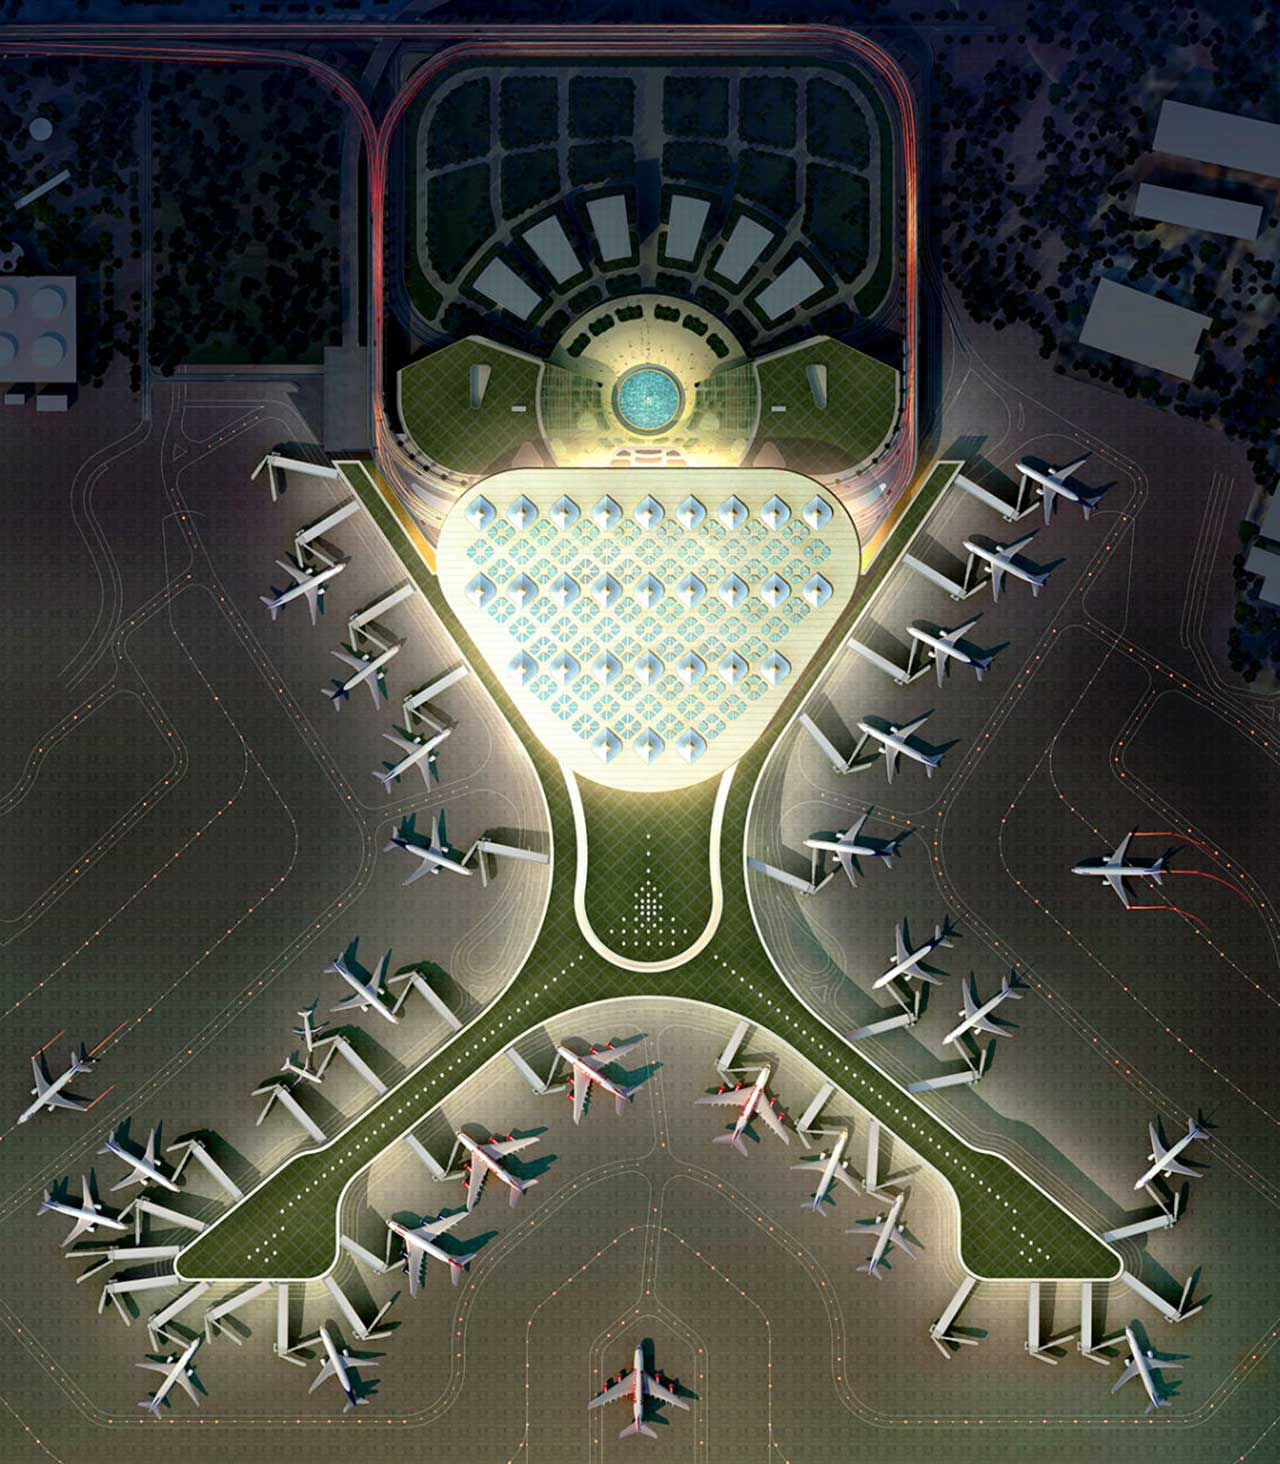 Mumbai Airport Designed layout